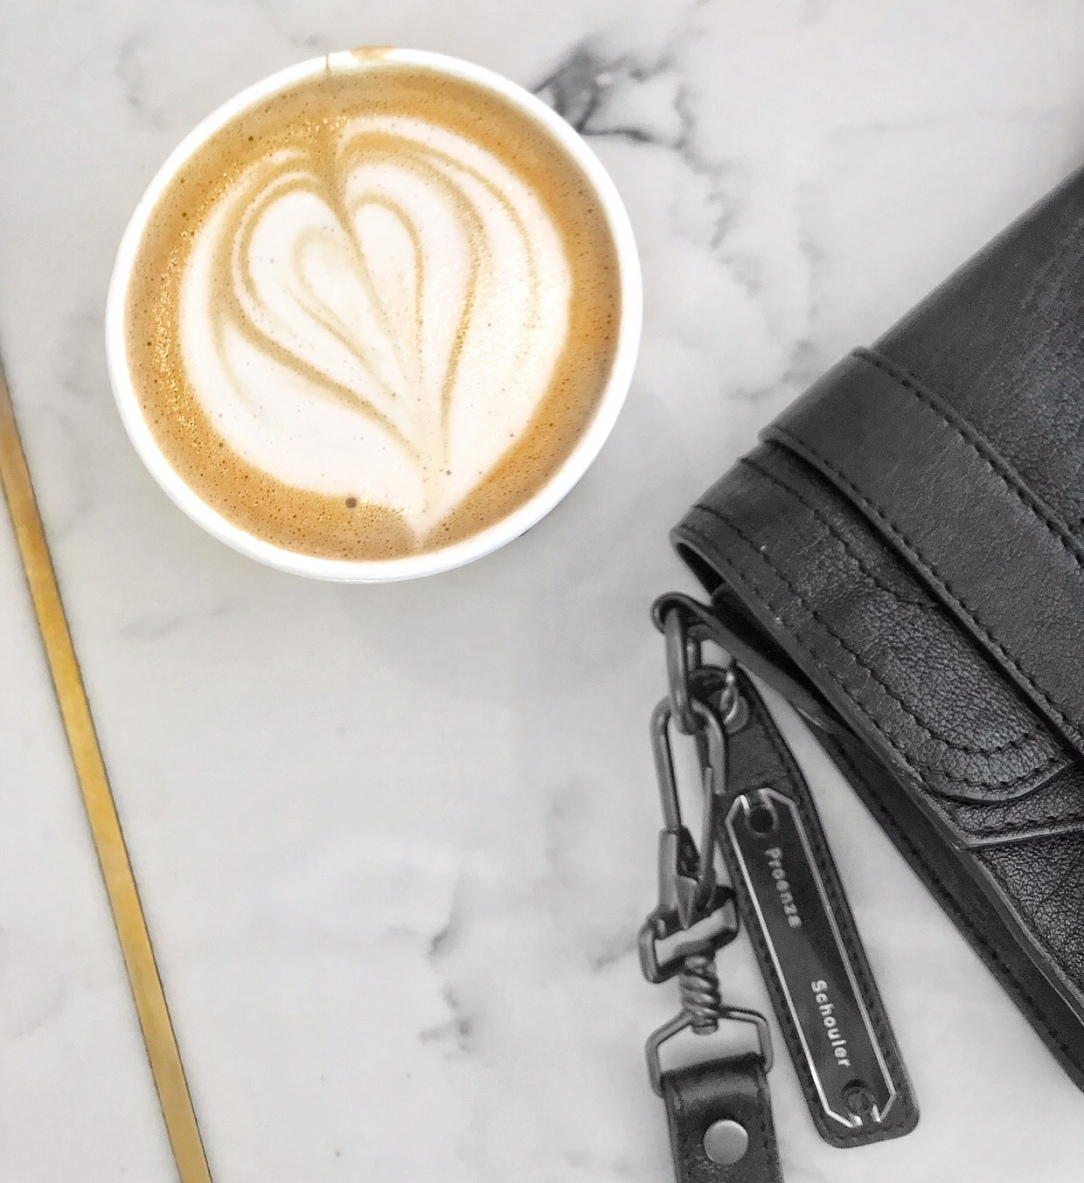 Proenza Schouler PS1 Mini Crossbody & Latte at Olympia Coffee Roasters | CoffeeandHandbags.com